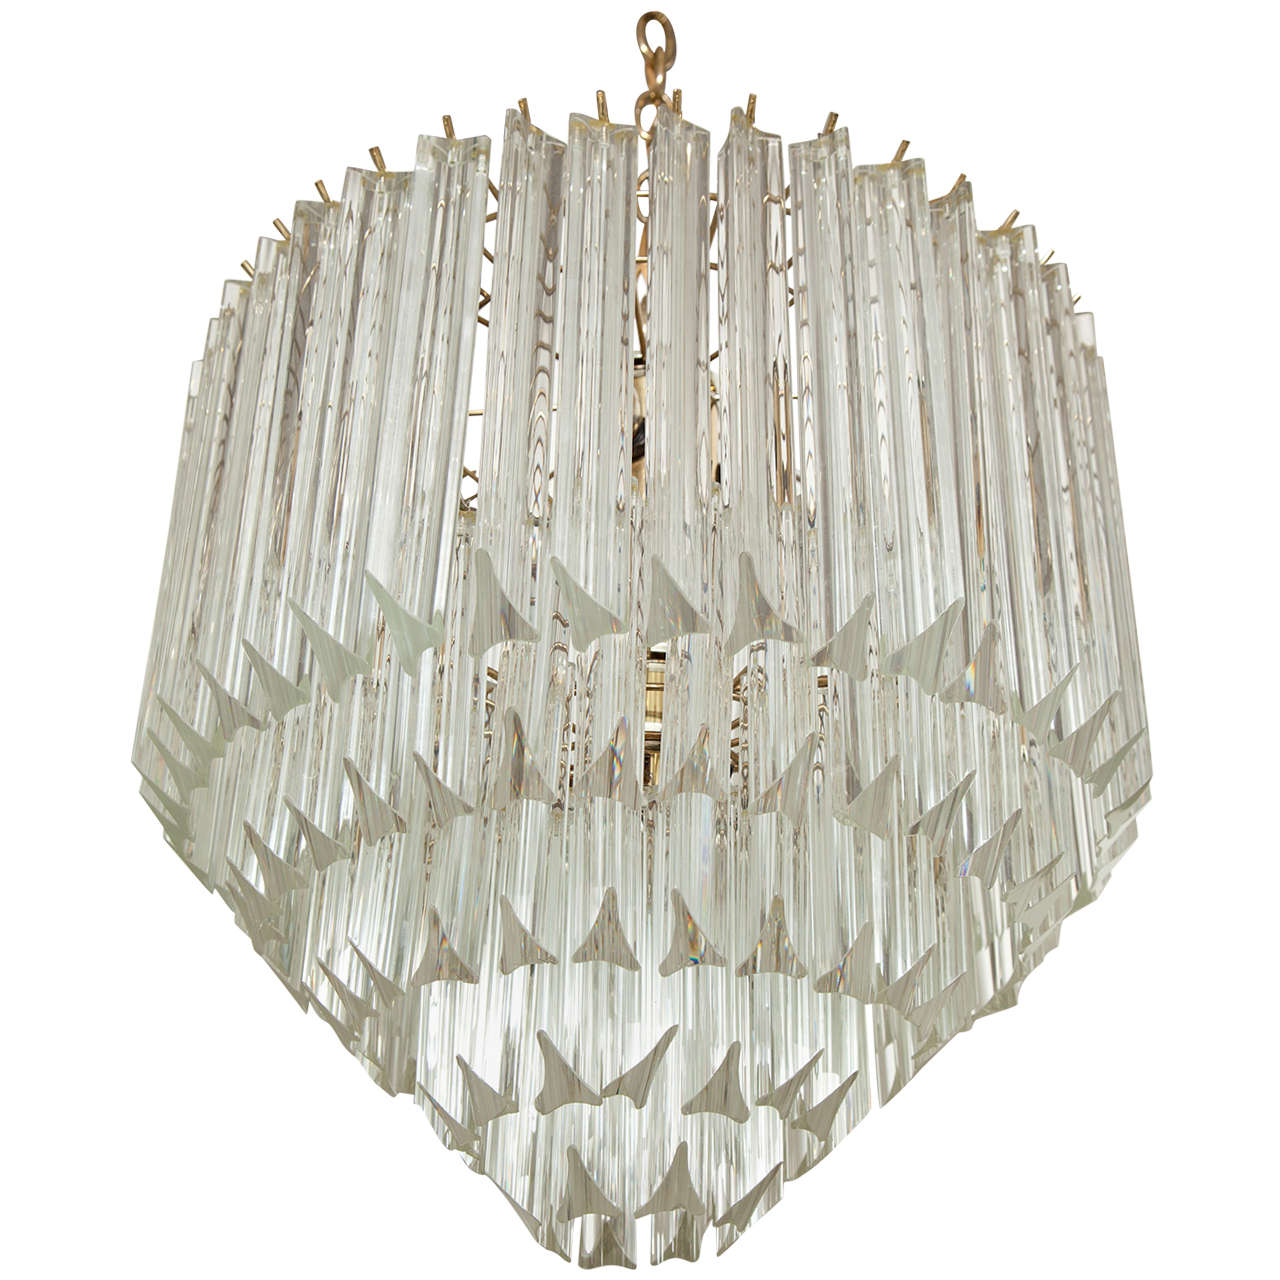 Camer glass chandeliers and pendants 75 for sale at 1stdibs five tier crystal prism chandelierflush mount by camer mozeypictures Choice Image